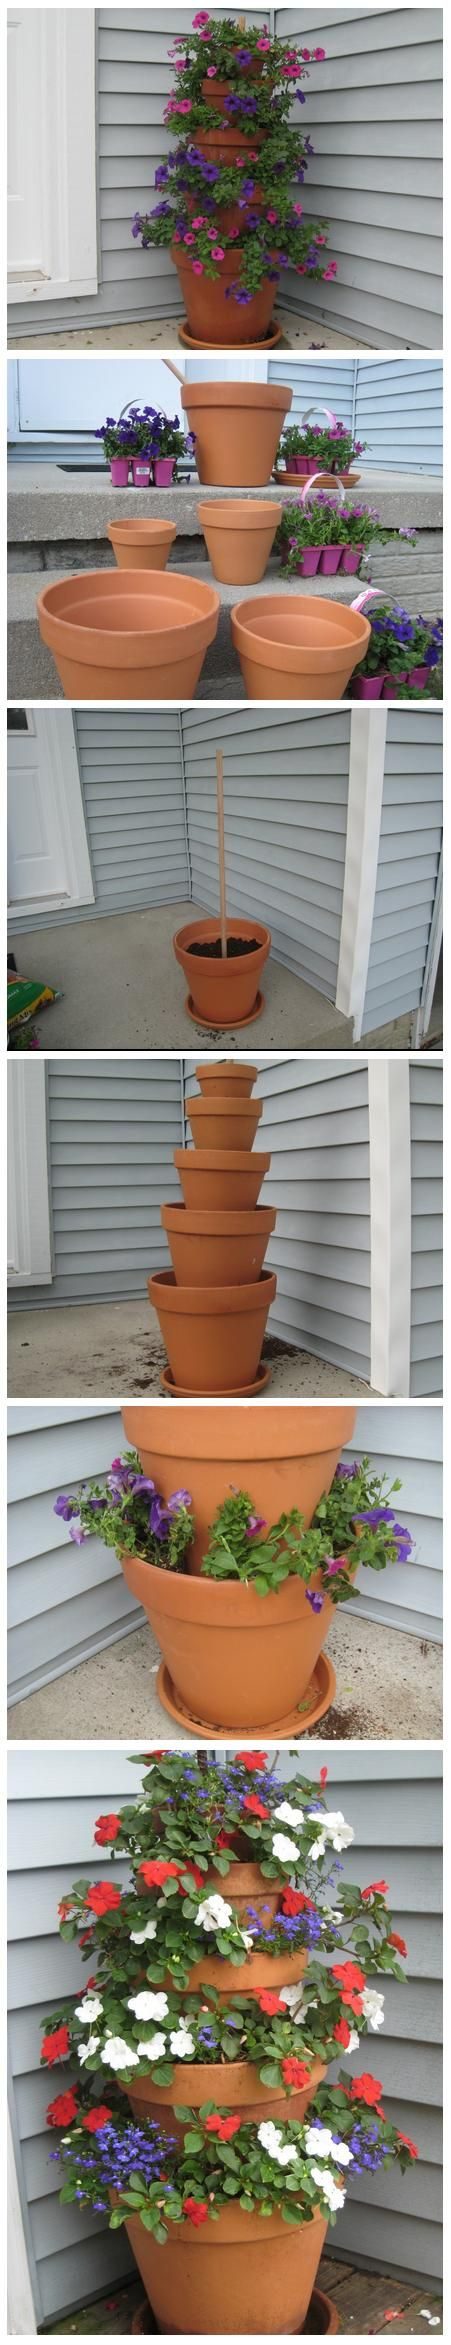 Stacked flower pots with annuals!